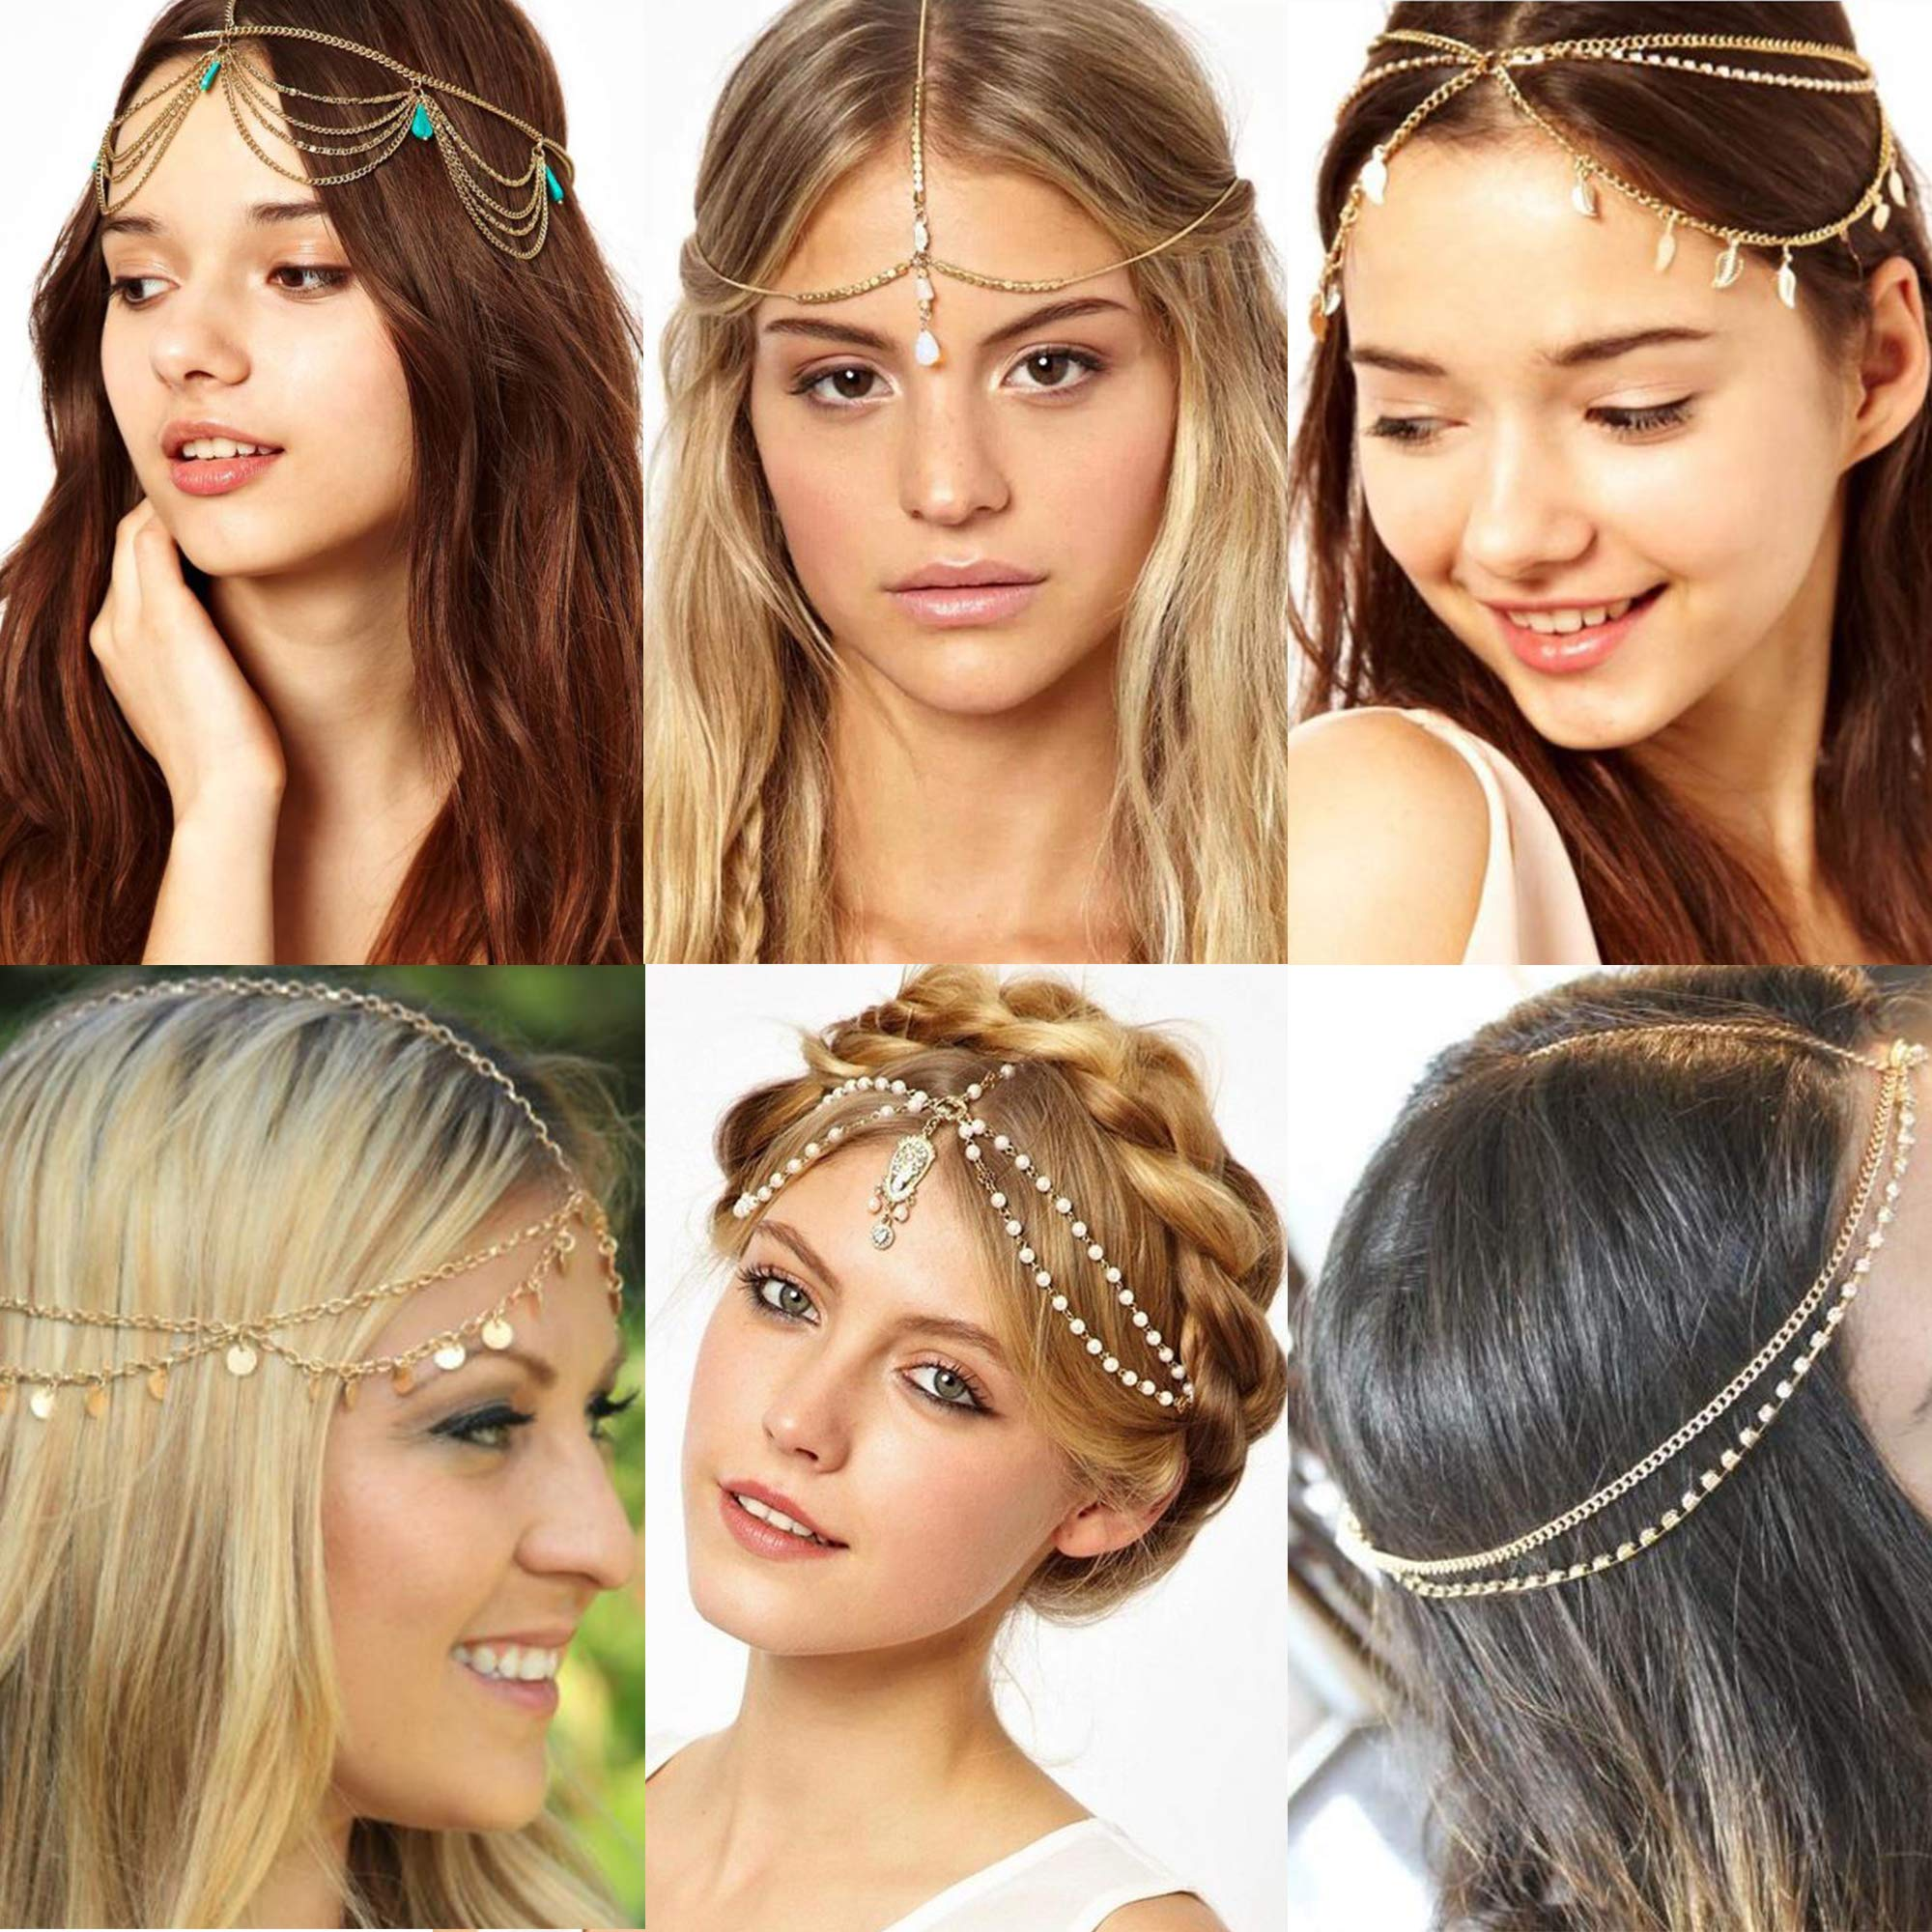 Jstyle 6Pcs Gold Head Chain Jewelry for Women Bridal Bohemian Halloween Headband Hair Headpiece by Jstyle